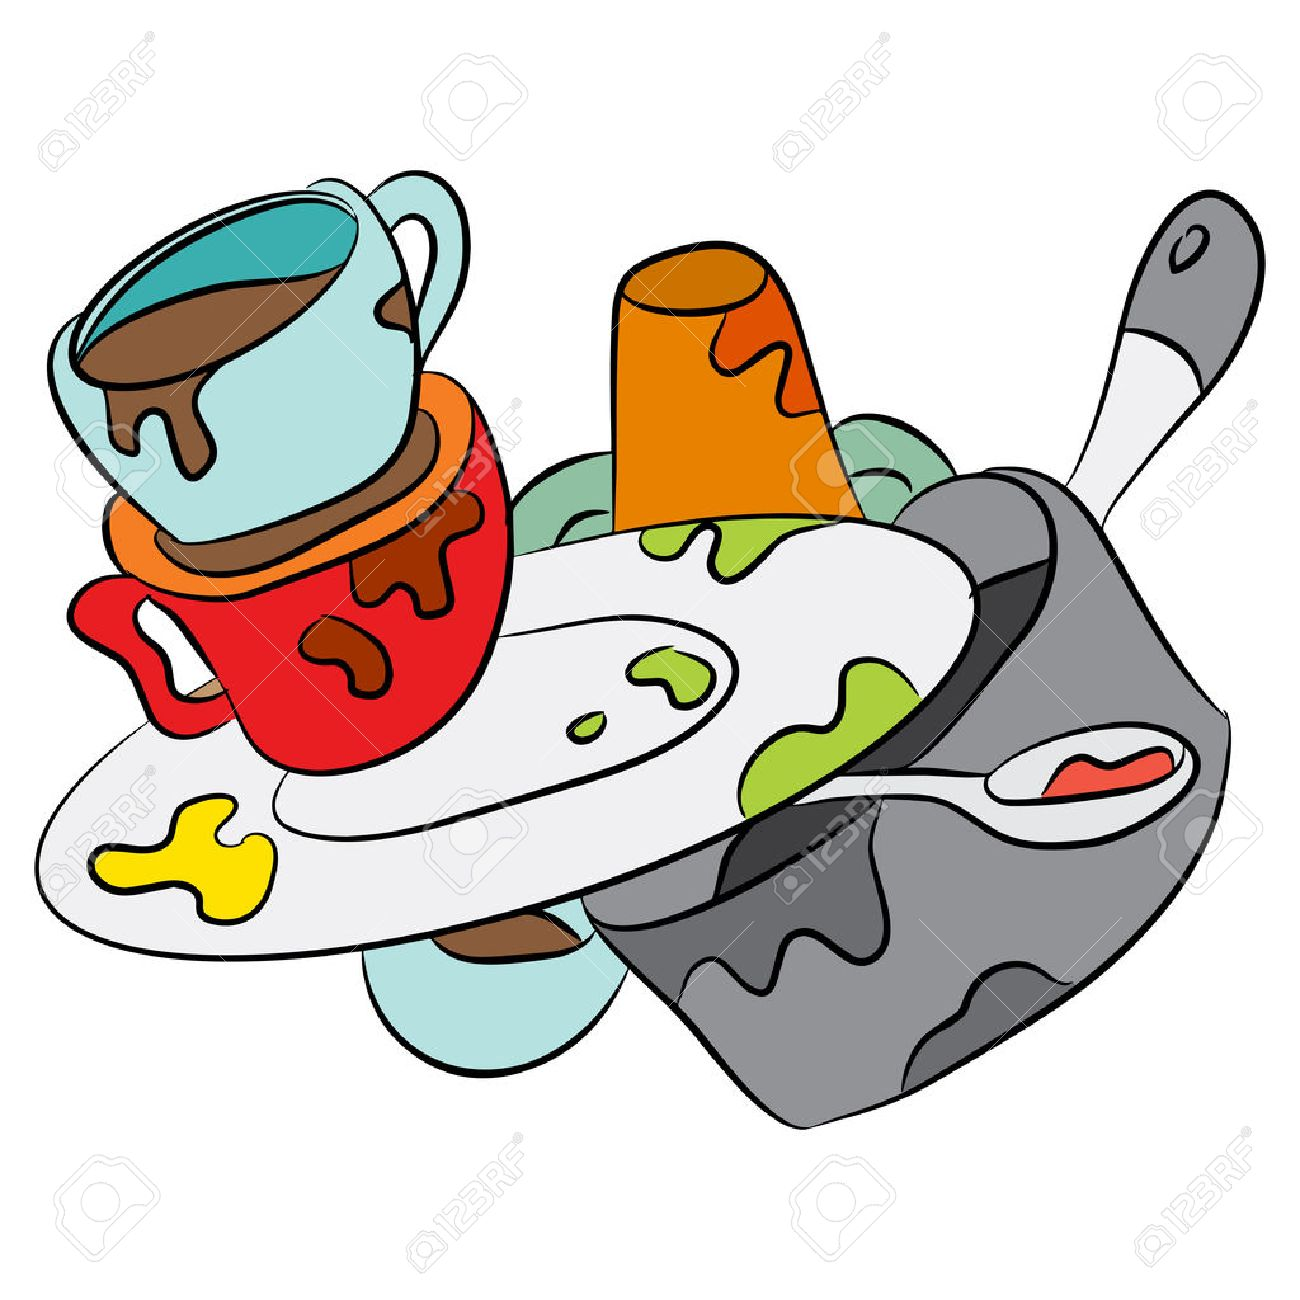 1300x1300 An Image Of A Cartoon Of Dirty Dishes. Royalty Free Cliparts